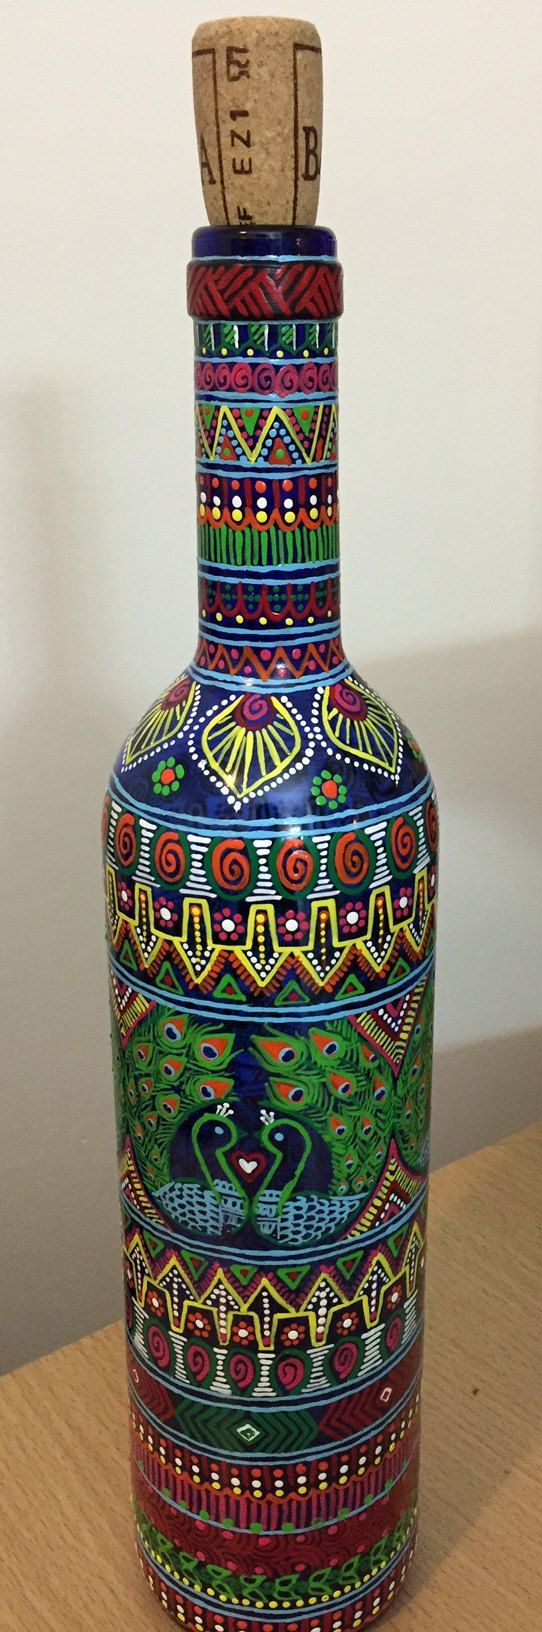 Peacock bottle art with acrylic colors